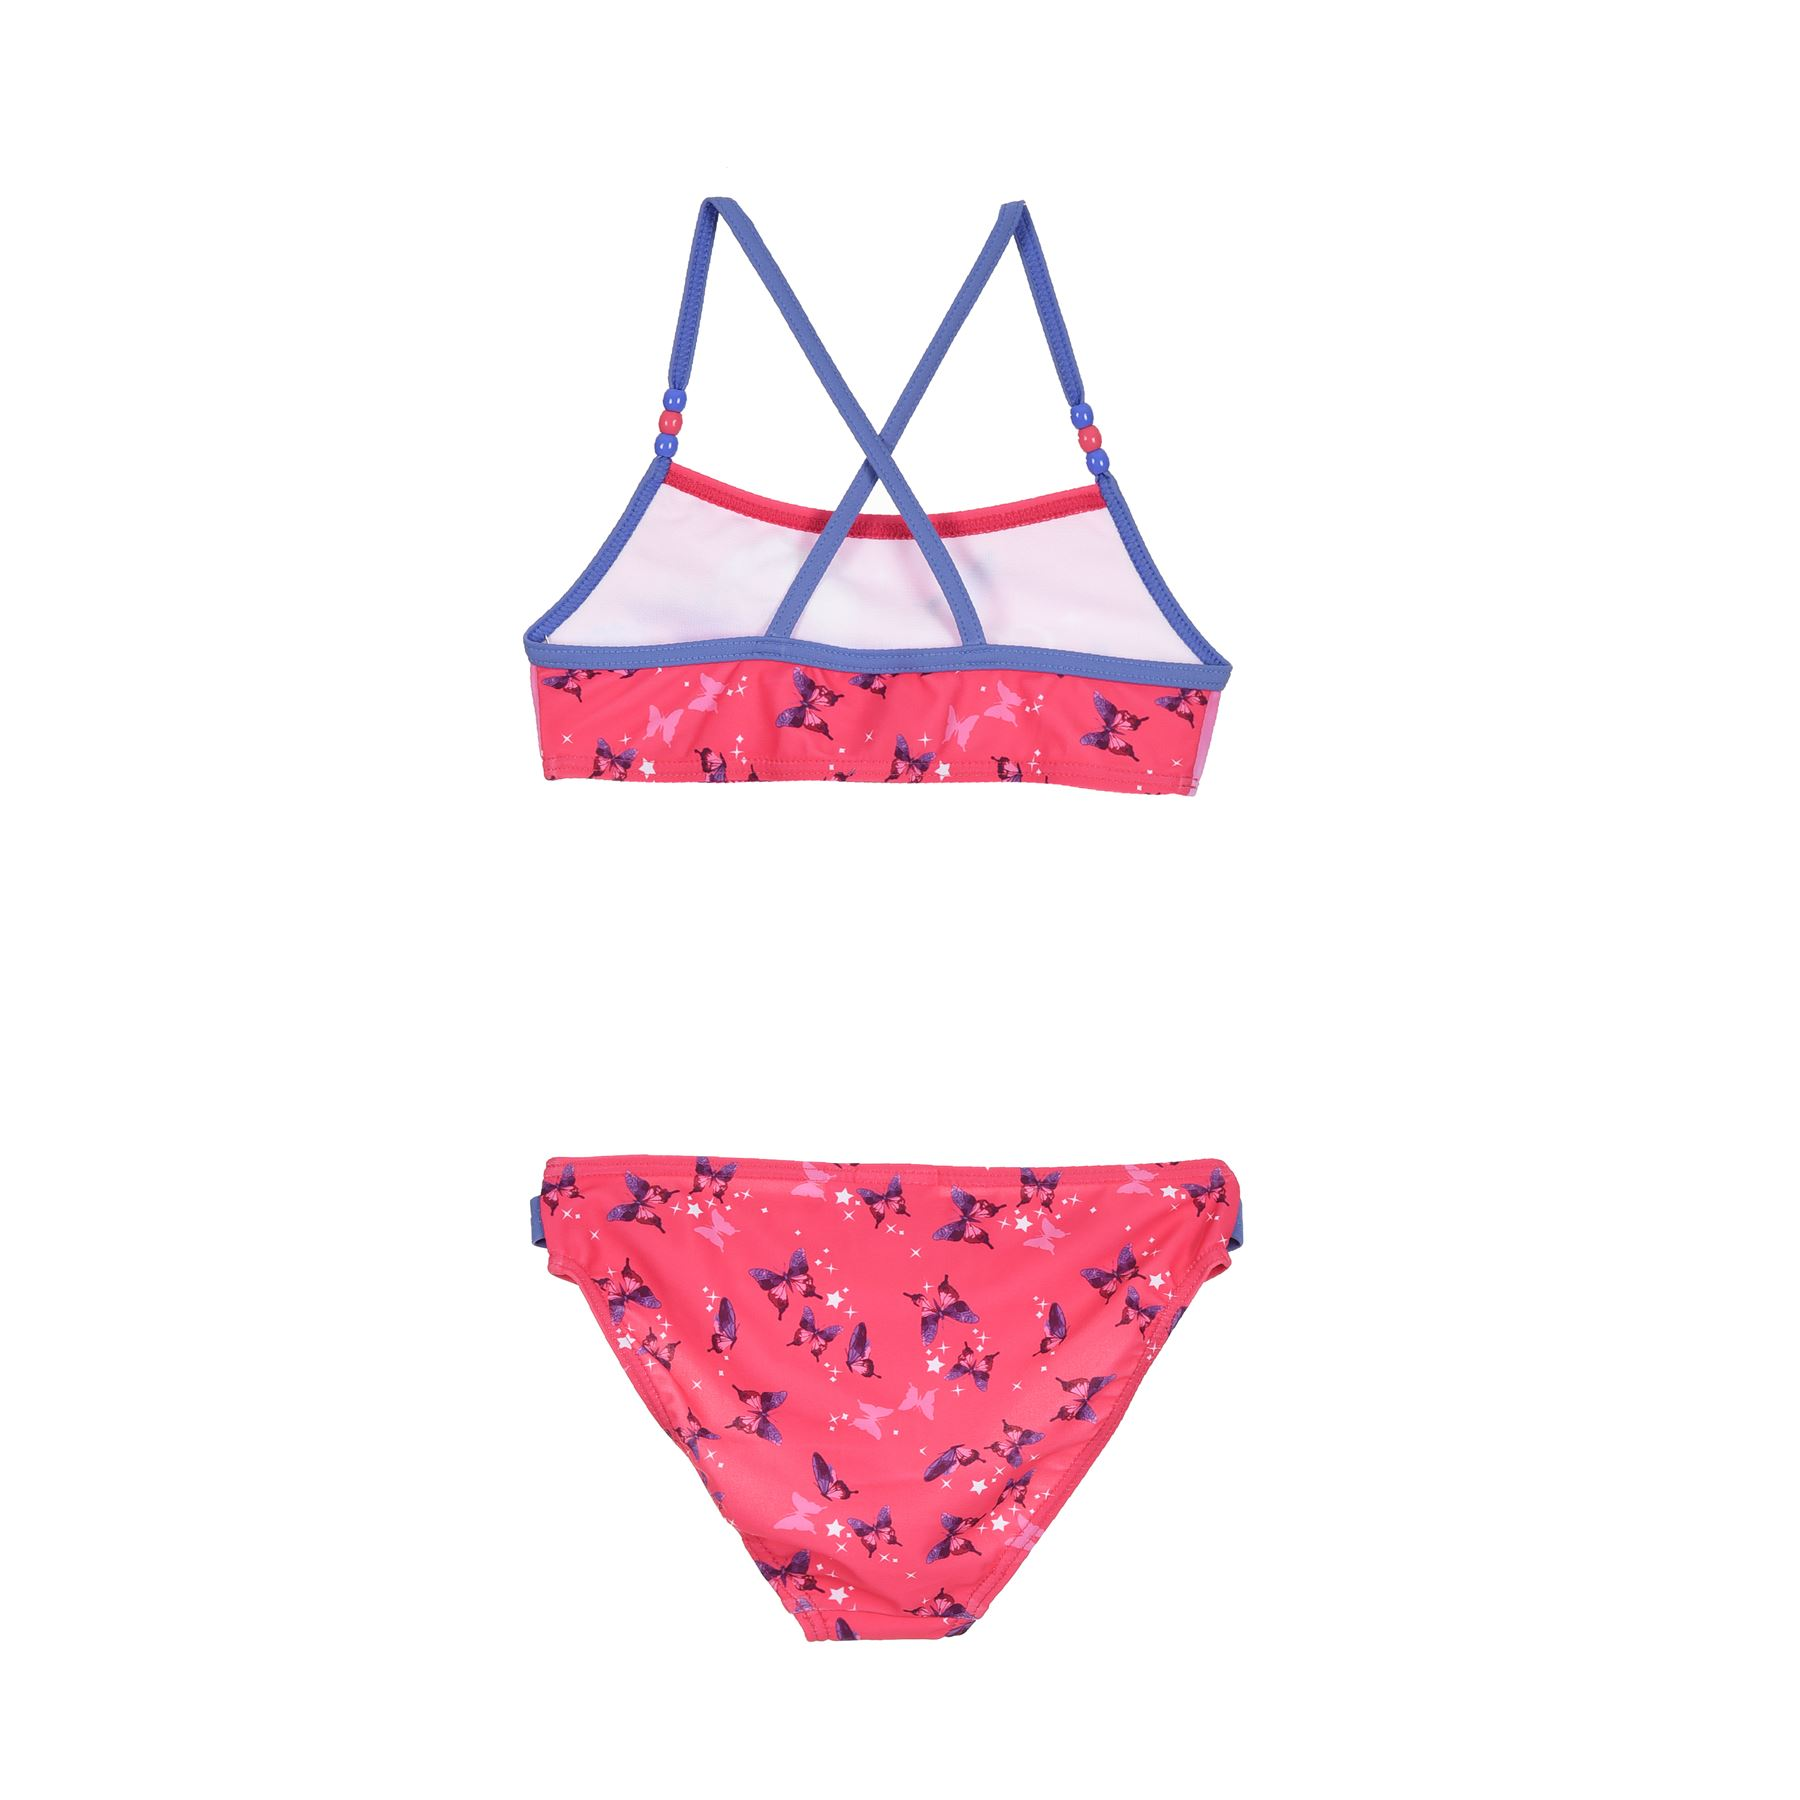 Girls-Bikini-Set-Childrens-Kids-Swimming-Costume-Age-3-8-Years thumbnail 12